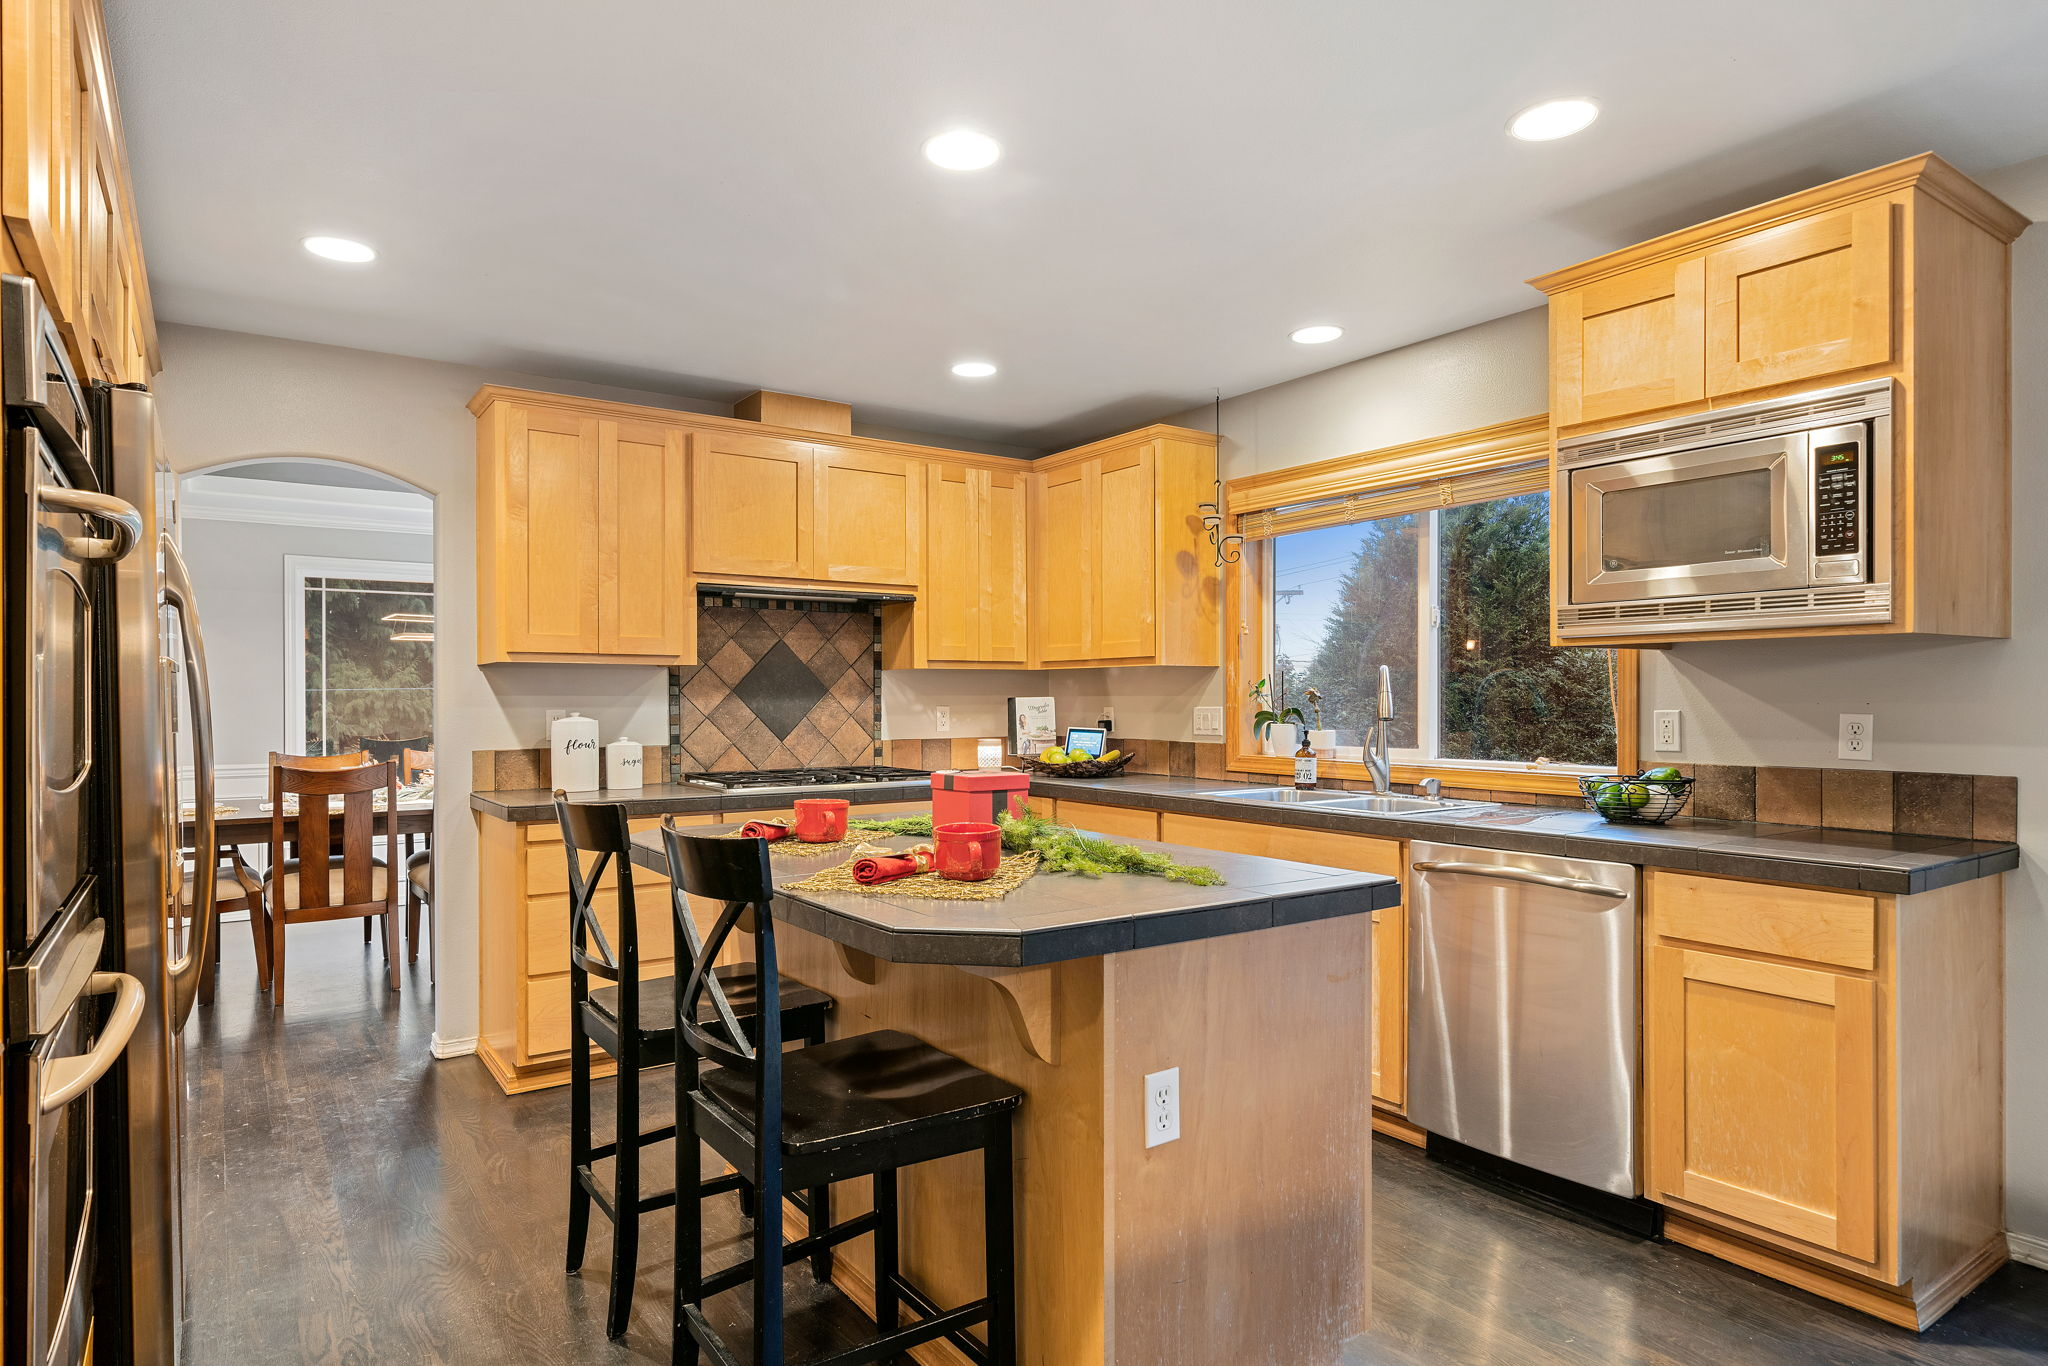 Chefs dream kitchen with double ovens and island! Stainless steel appliances.